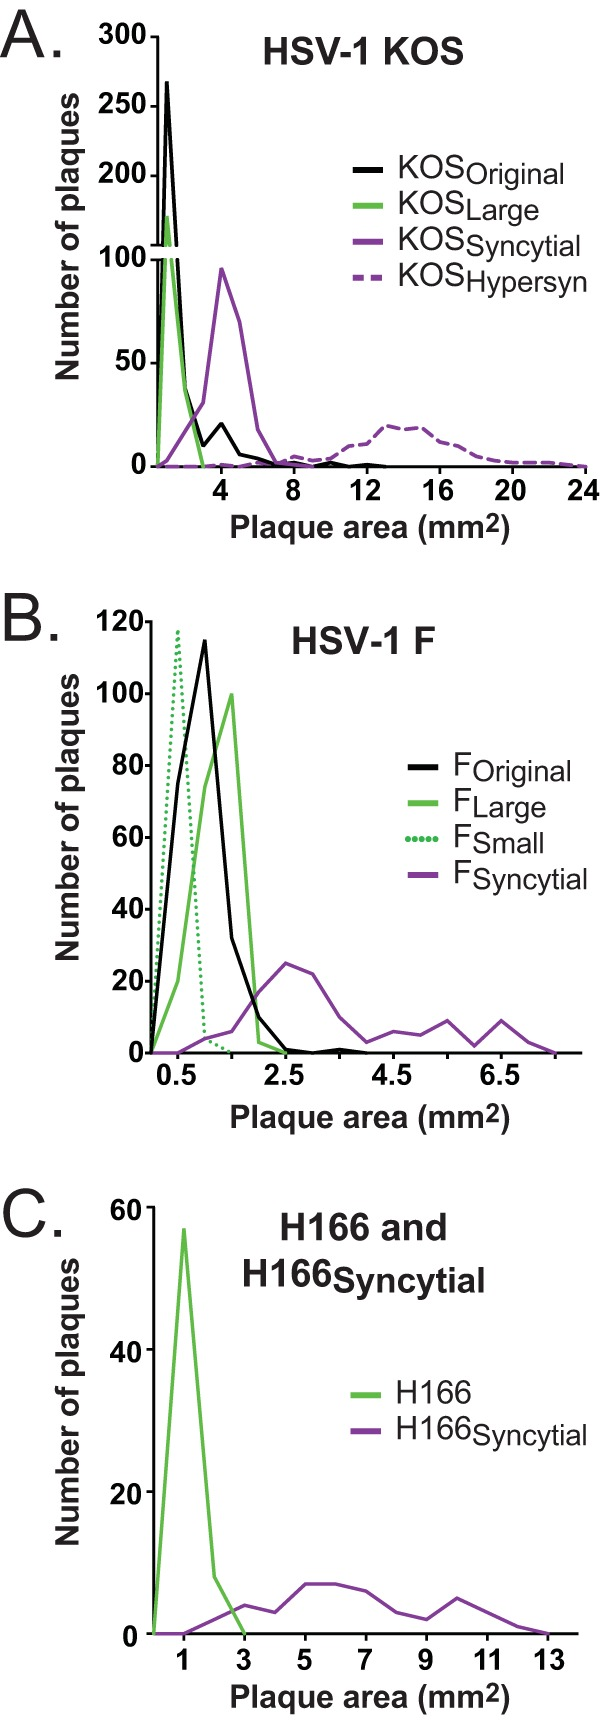 Distribution of plaque morphologies before and after plaque purification. The graph depicts the number of plaques with a given area for each variant of plaque morphology shown in Fig. 1 . (A) Distribution of the original HSV-1 KOS stock and the large, syncytial, and hypersyncytial variants. Bins include the number of plaques with areas up to the value shown on the x axis (bins of 1 mm for HSV-1 KOS subclones). (B) Distribution of the original HSV-1 F stock and the large, small, and syncytial variants. Bins of 0.5 mm were used for HSV-1 F subclones. (C) Size distribution of plaques from clinical HSV-1 strains H166 and H166 Syncytial , using bins of 1 mm. Solid black lines indicate parental virus stocks, green lines indicate variants with standard cytopathic effect (CPE), and purple lines indicate syncytial variants. All plaques were quantified at 72 hpi. Note that the x axis scale varies across panels.